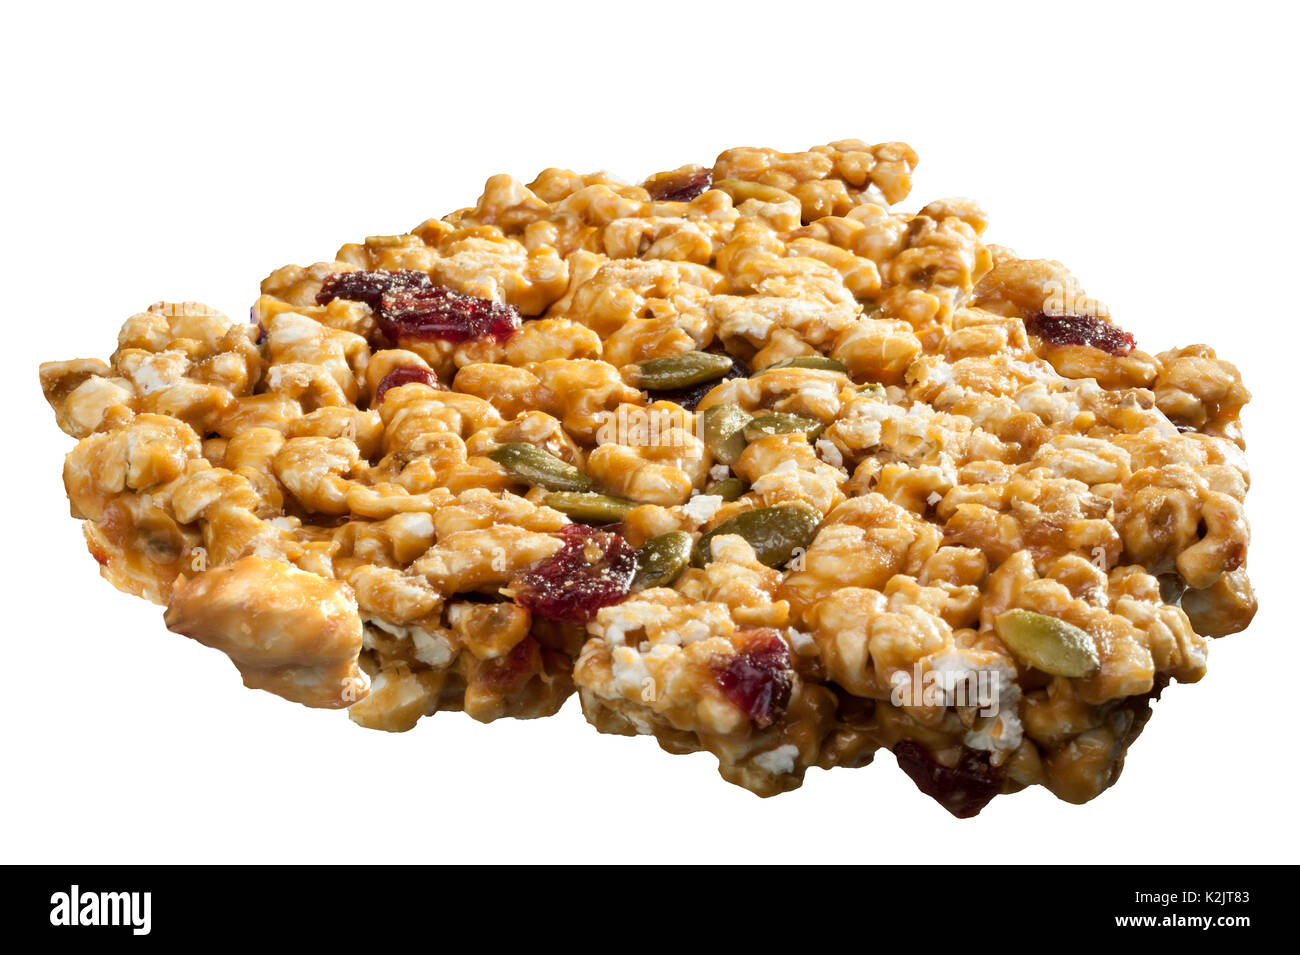 Brittle snack food - Stock Image